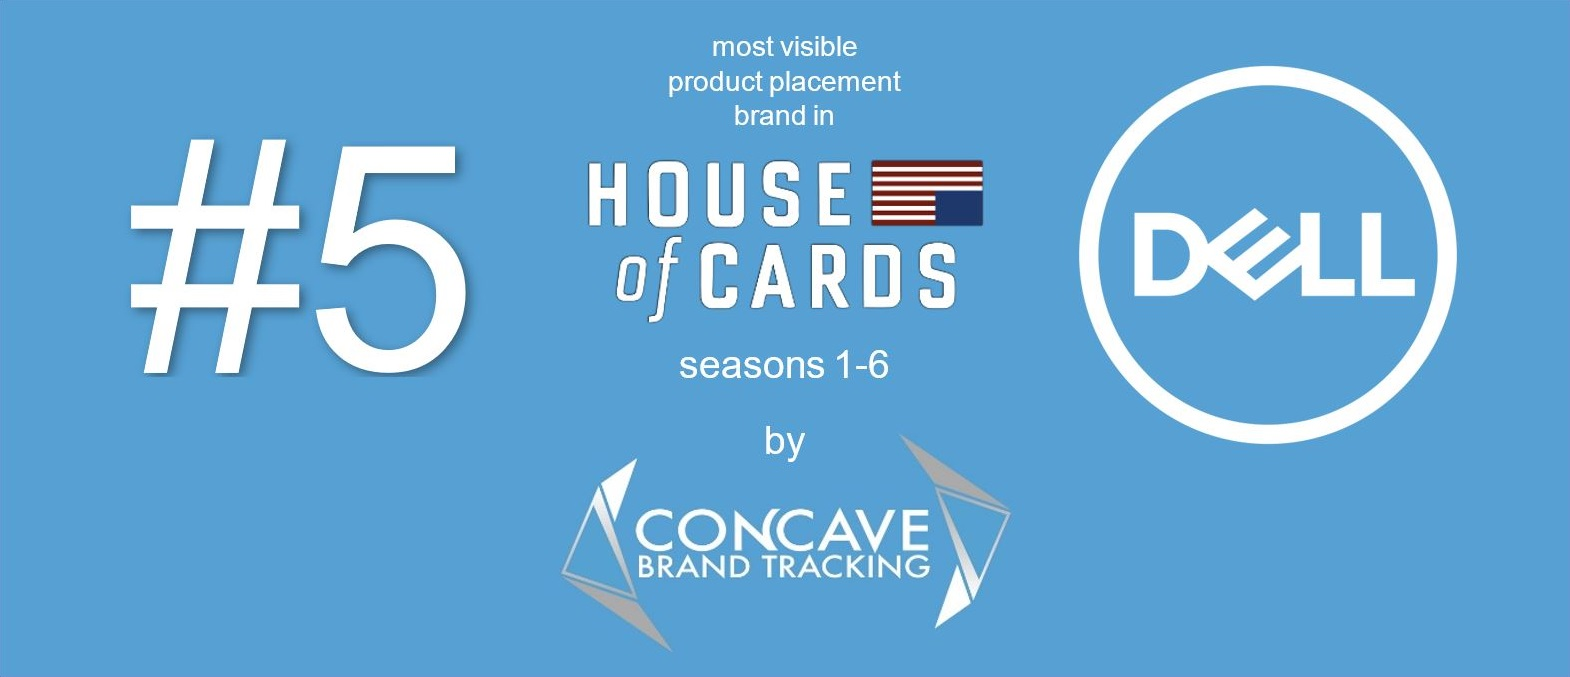 Dell dell #5 5 10 most visible product placement brand in HOUSE OF CARDS Concave Brand Tracking